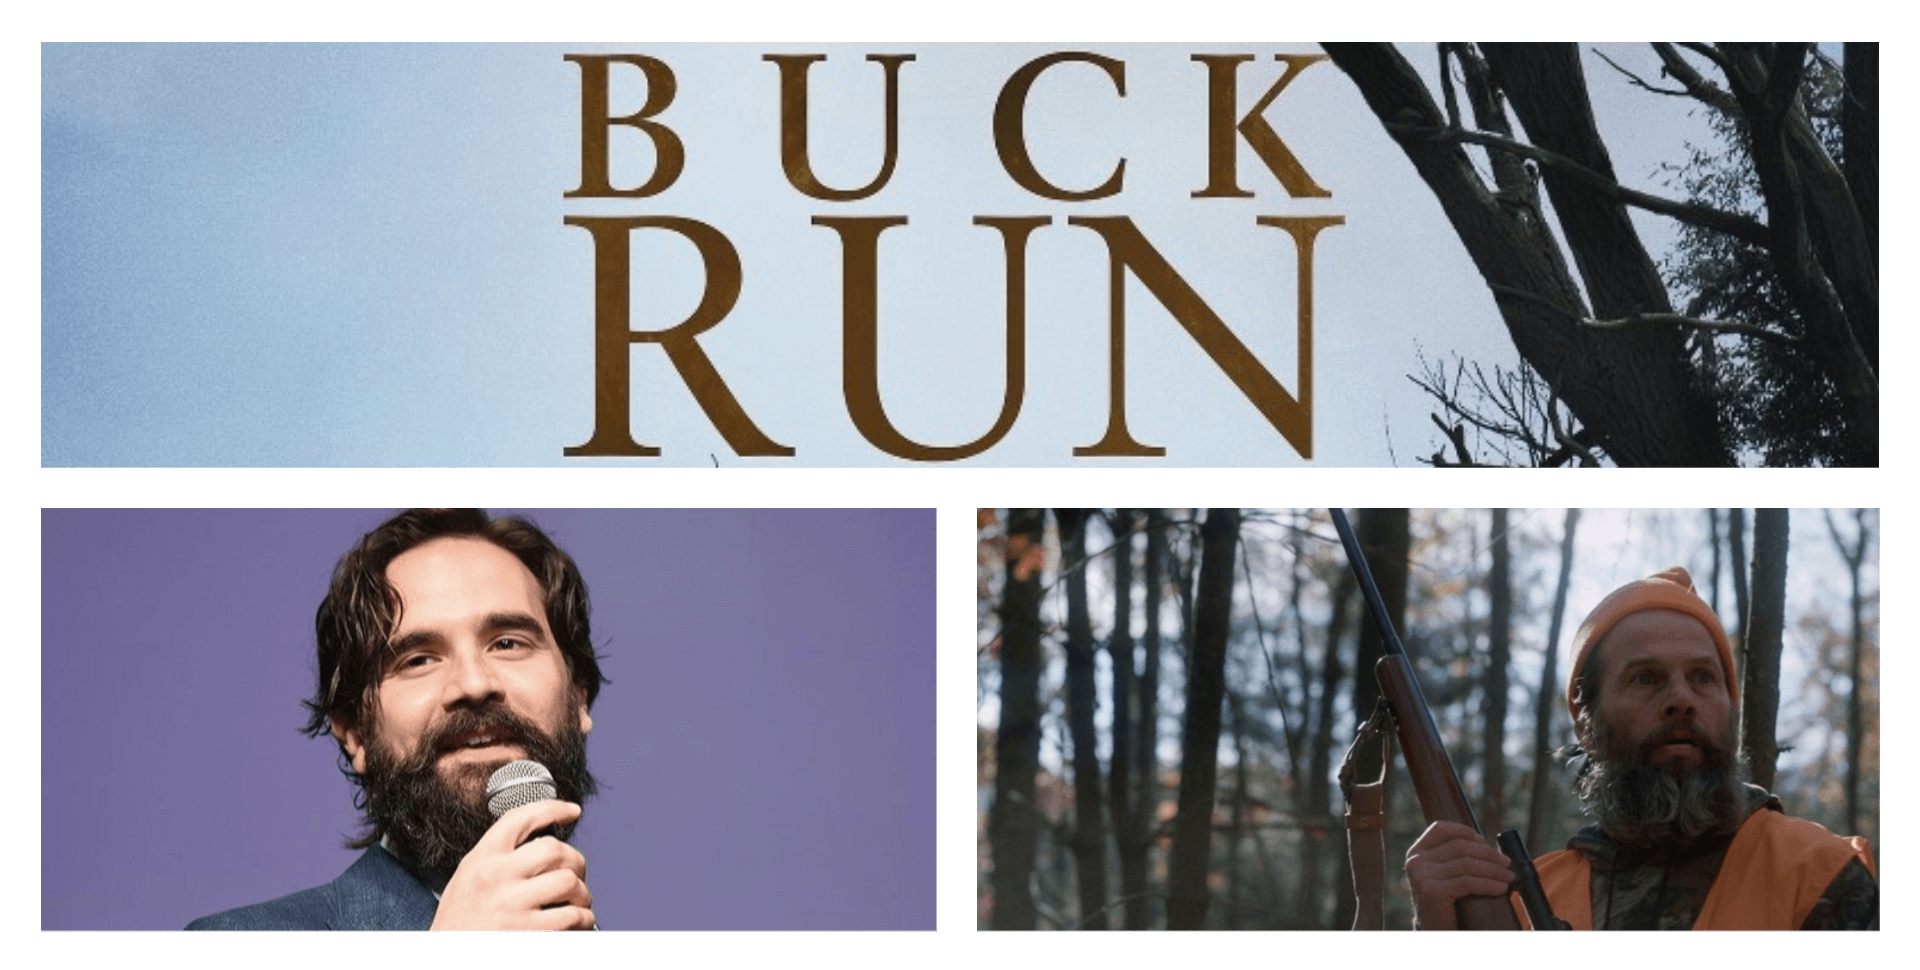 Image from Buck Run - Interview with Film Director Nick Frangione